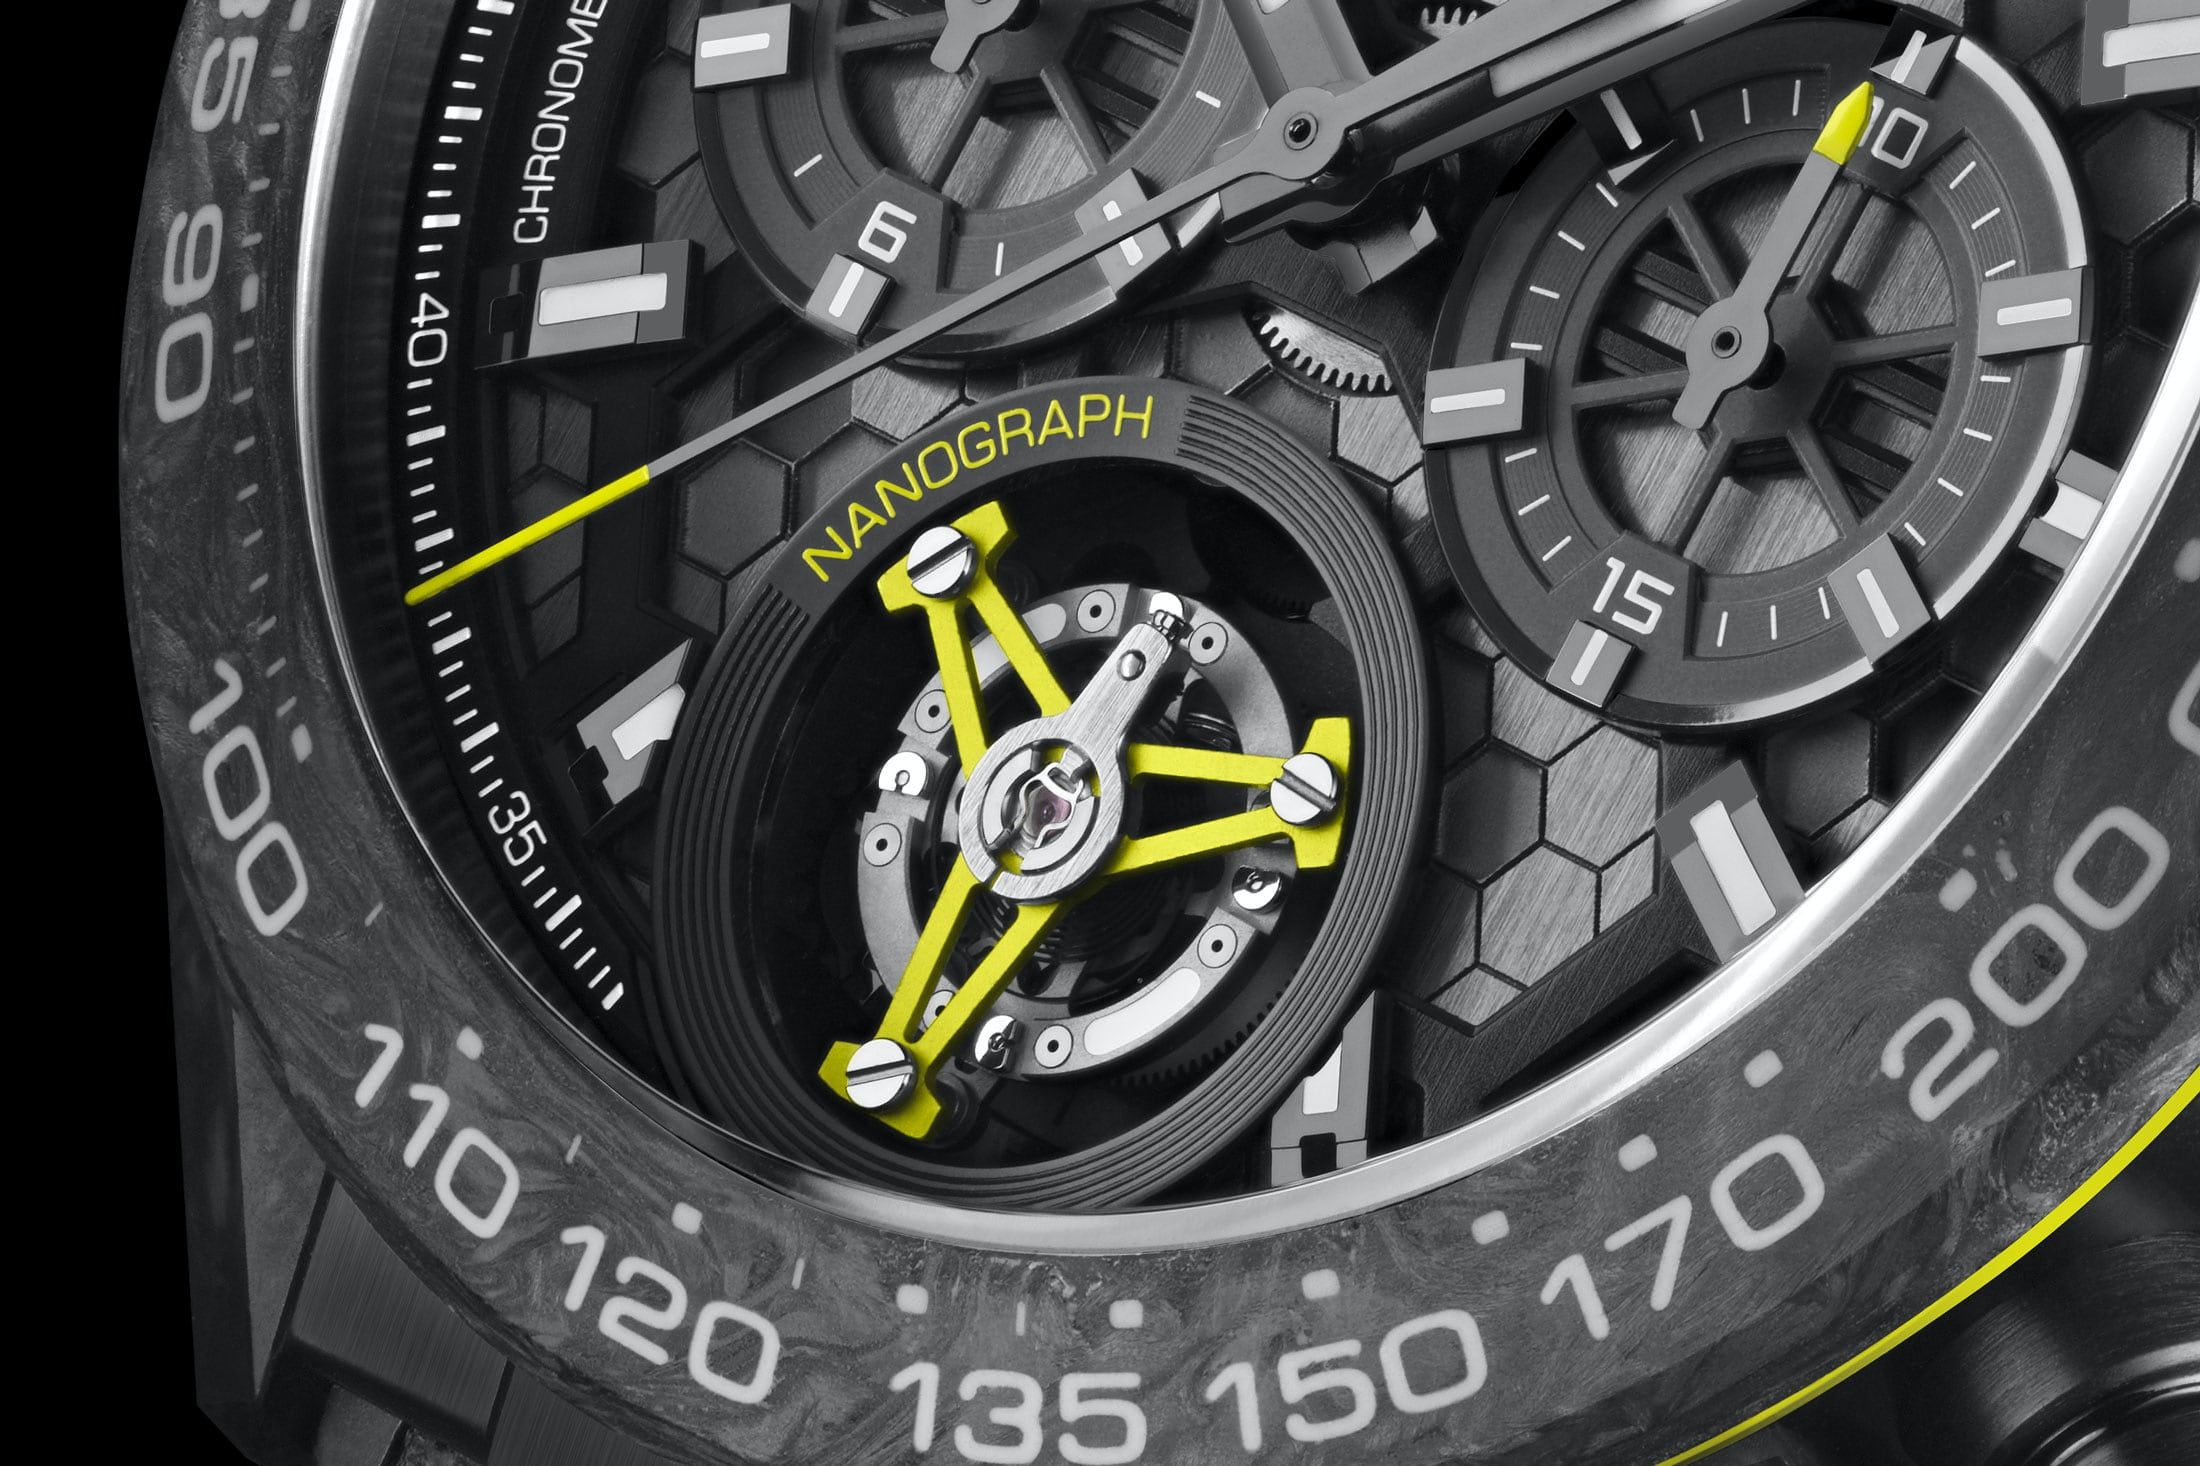 tag-heuer-carrera-calibre-heuer-02t-tourbillon-nanograph-carriage